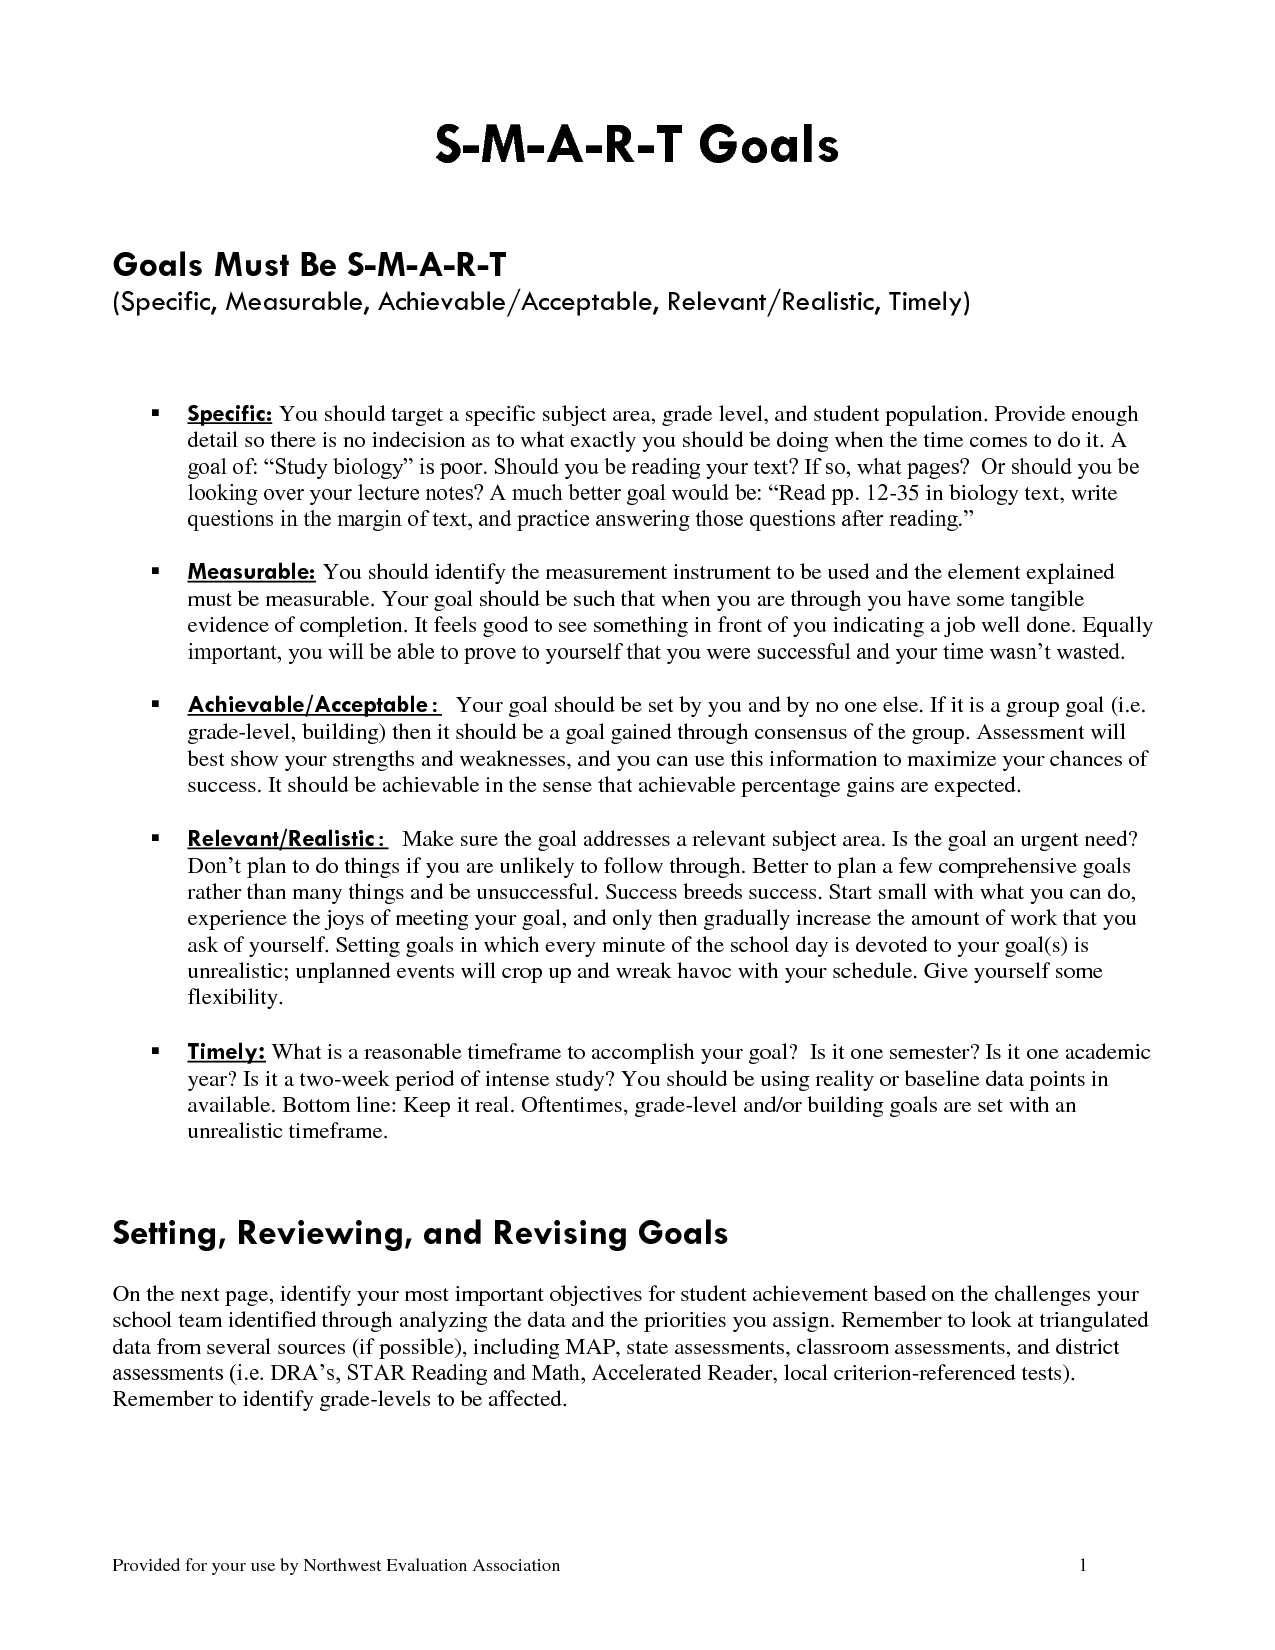 educational smart goals template smart goals doc s m a r t goals educational smart goals template smart goals doc s m a r t goals goals